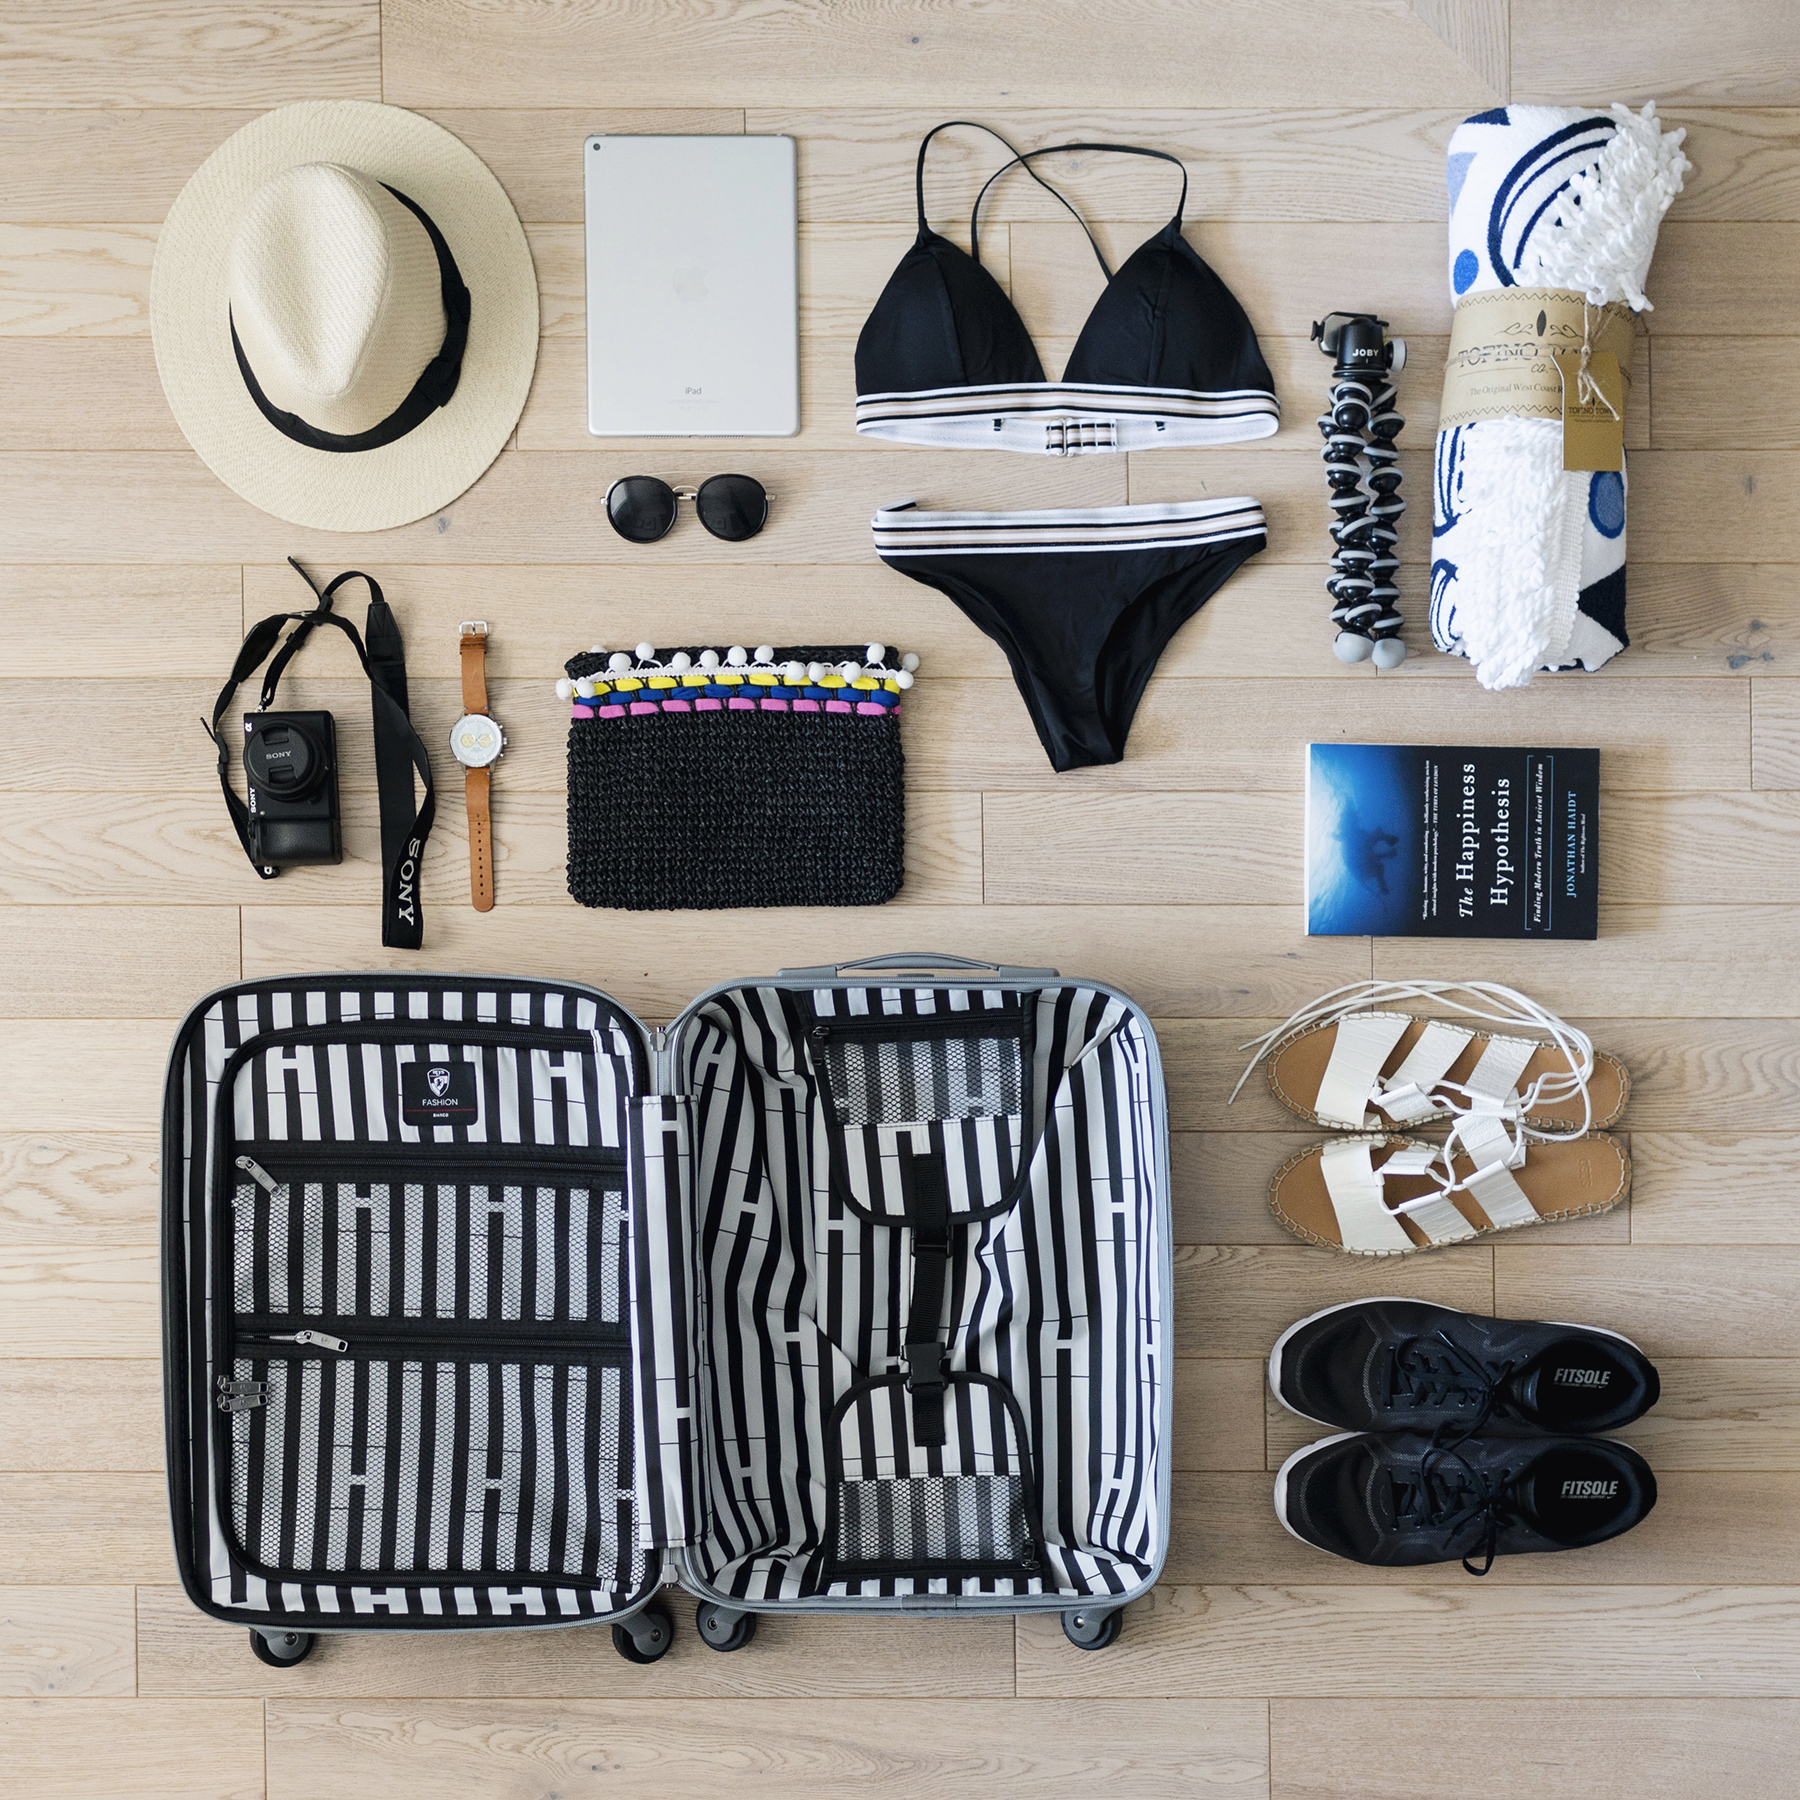 10 Things to Pack for a KidsFree Beach Vacation  Happy